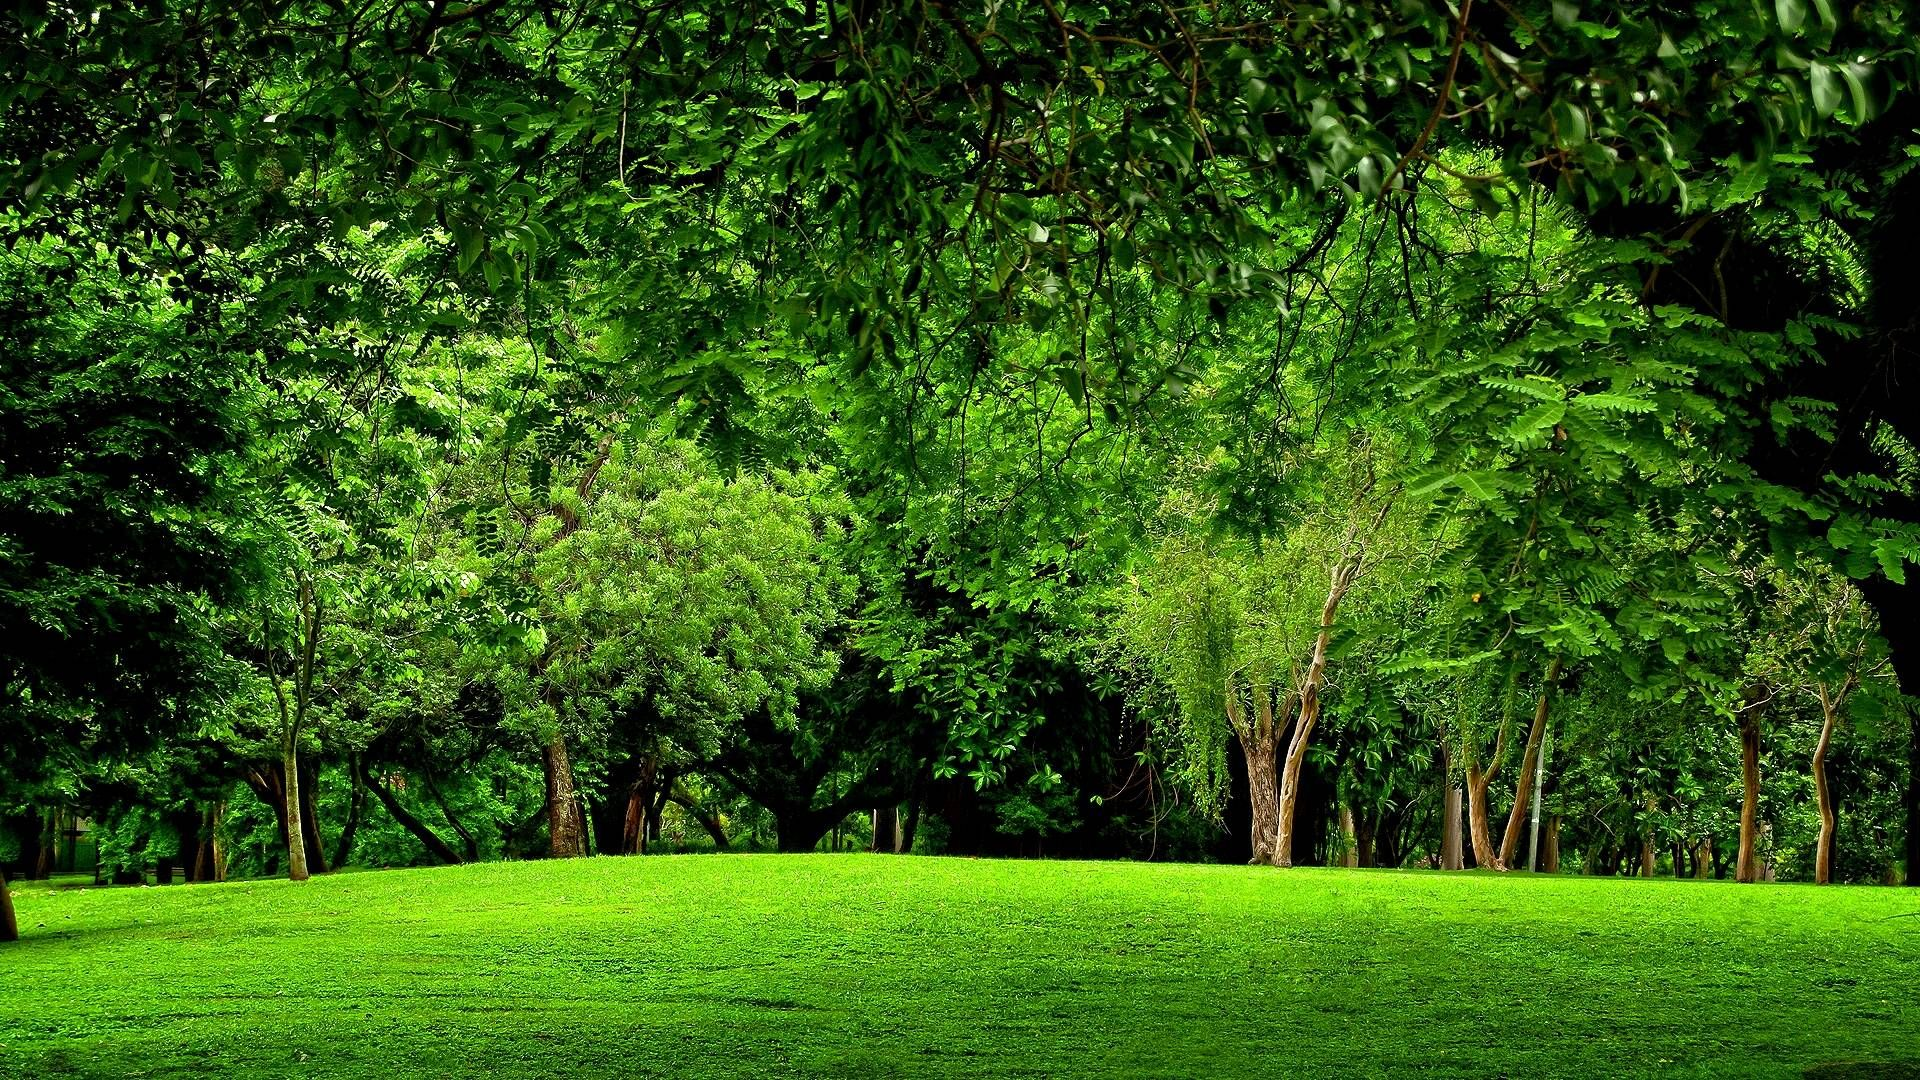 Beautiful Nature Forest Wallpaper 1920x1080 Green Landscape Forest Wallpaper Forest Scenery